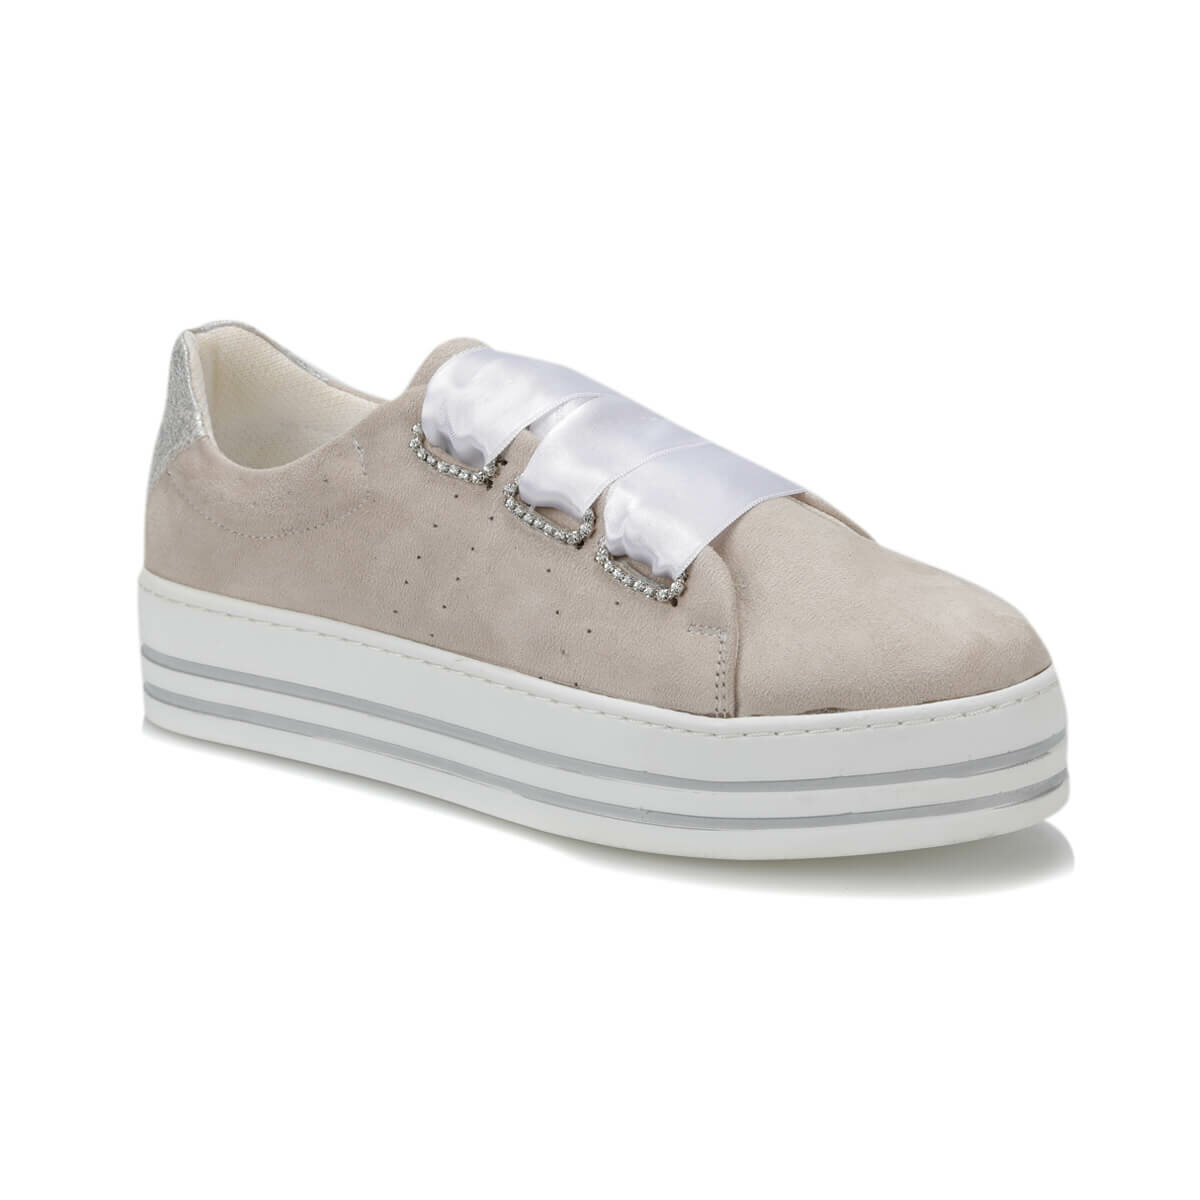 FLO 19S-150 Beige Women 'S Sneaker Shoes BUTIGO